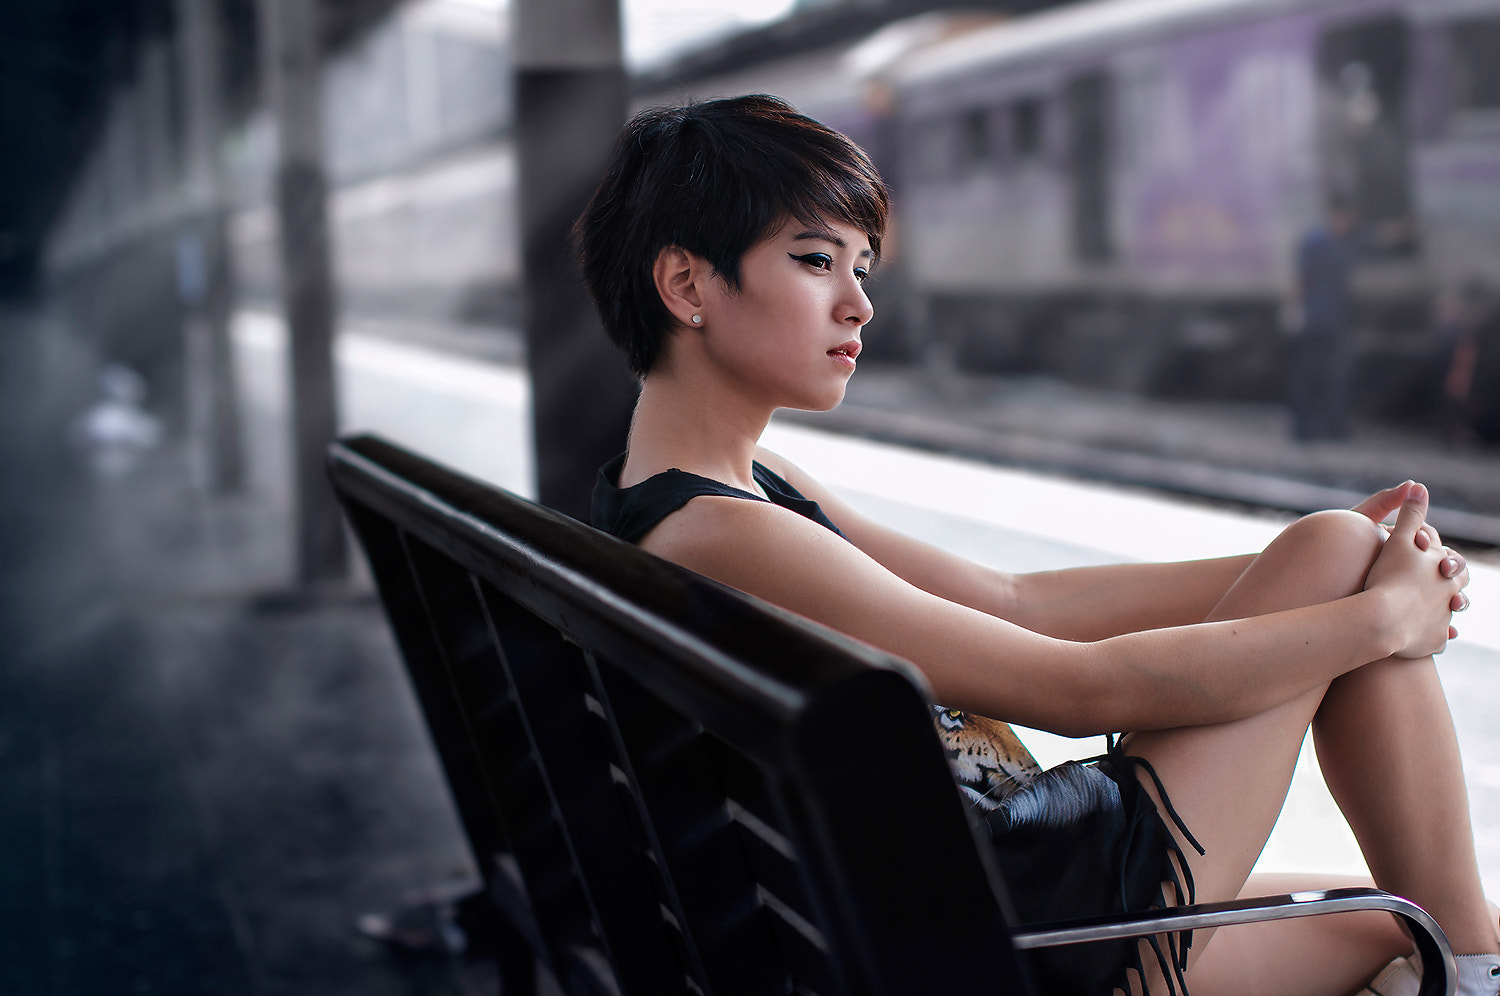 Photograph Waiting for someone by j.p photo  on 500px